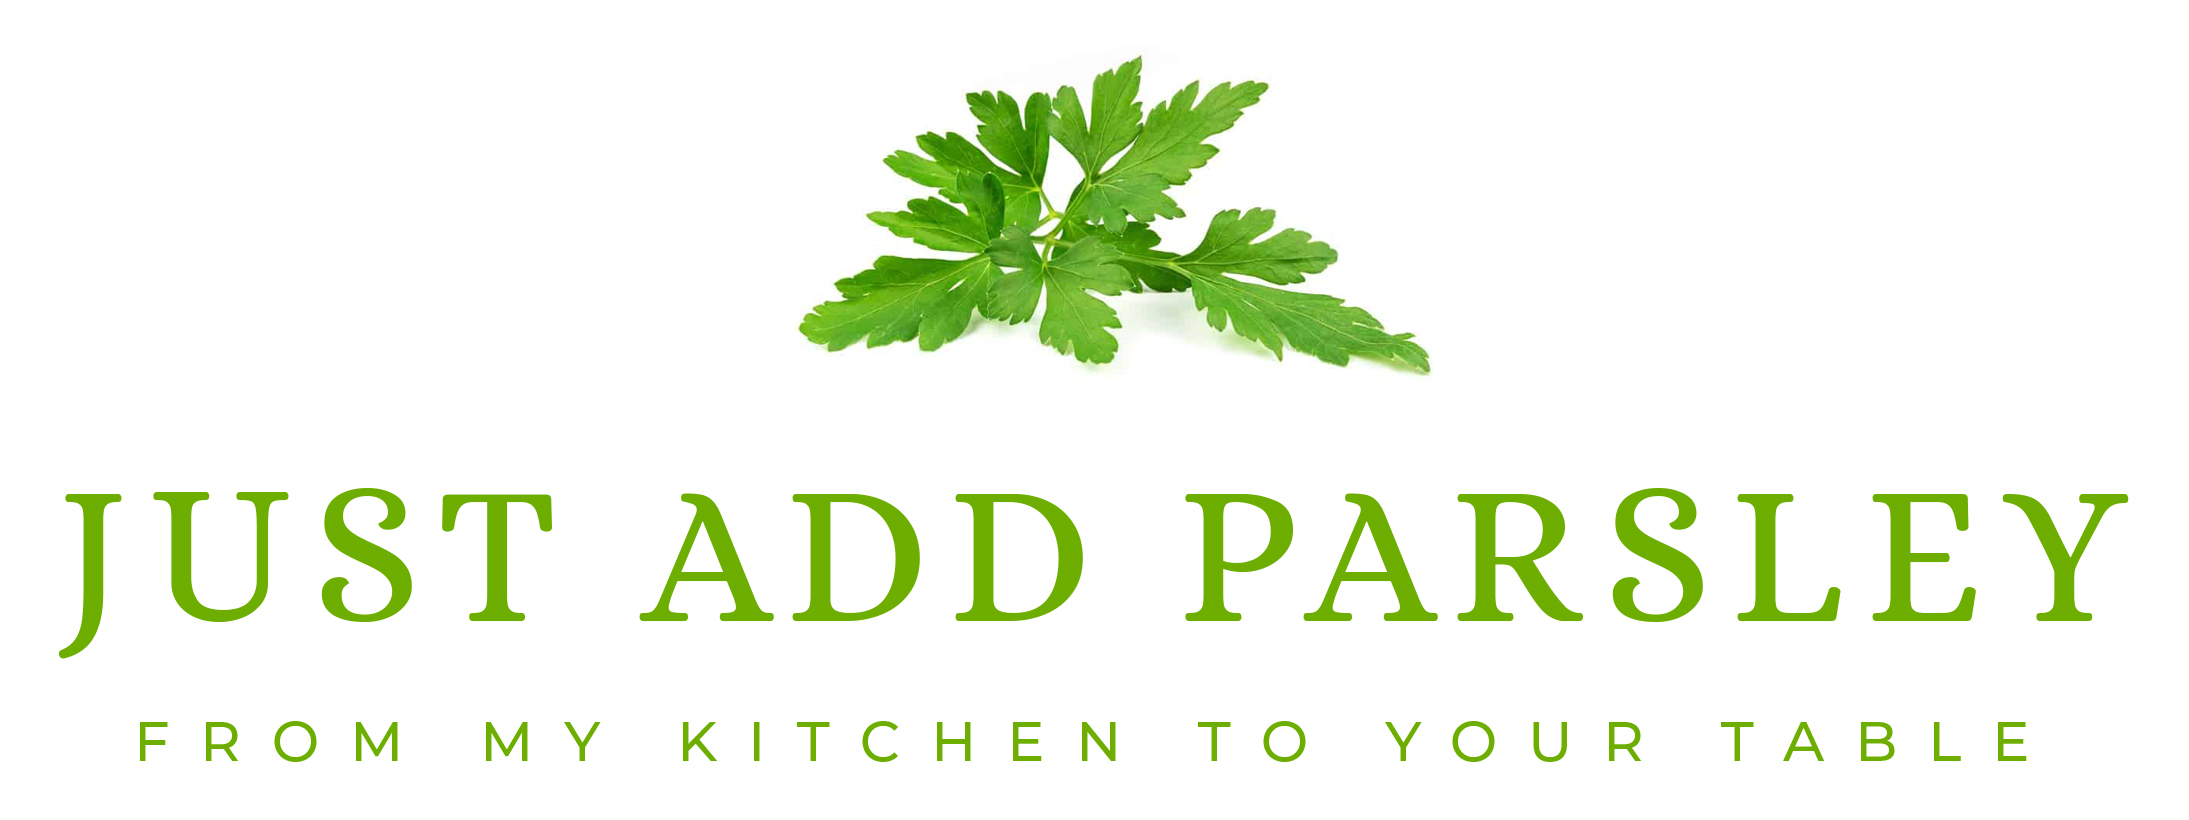 Just Add Parsley logo